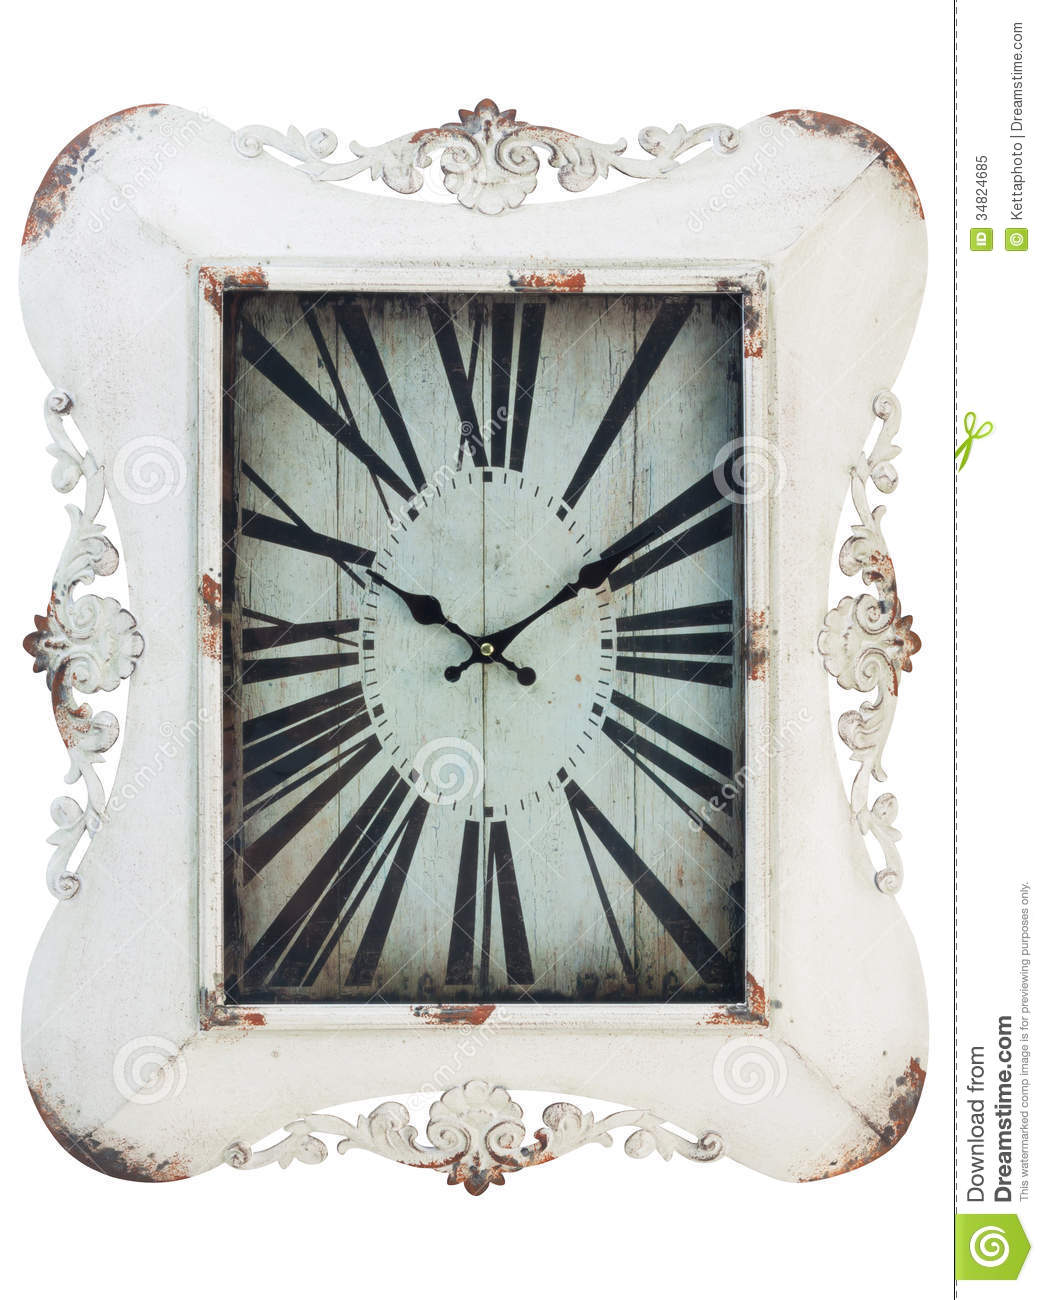 horloge murale de vintage image stock image du d coration 34824685. Black Bedroom Furniture Sets. Home Design Ideas